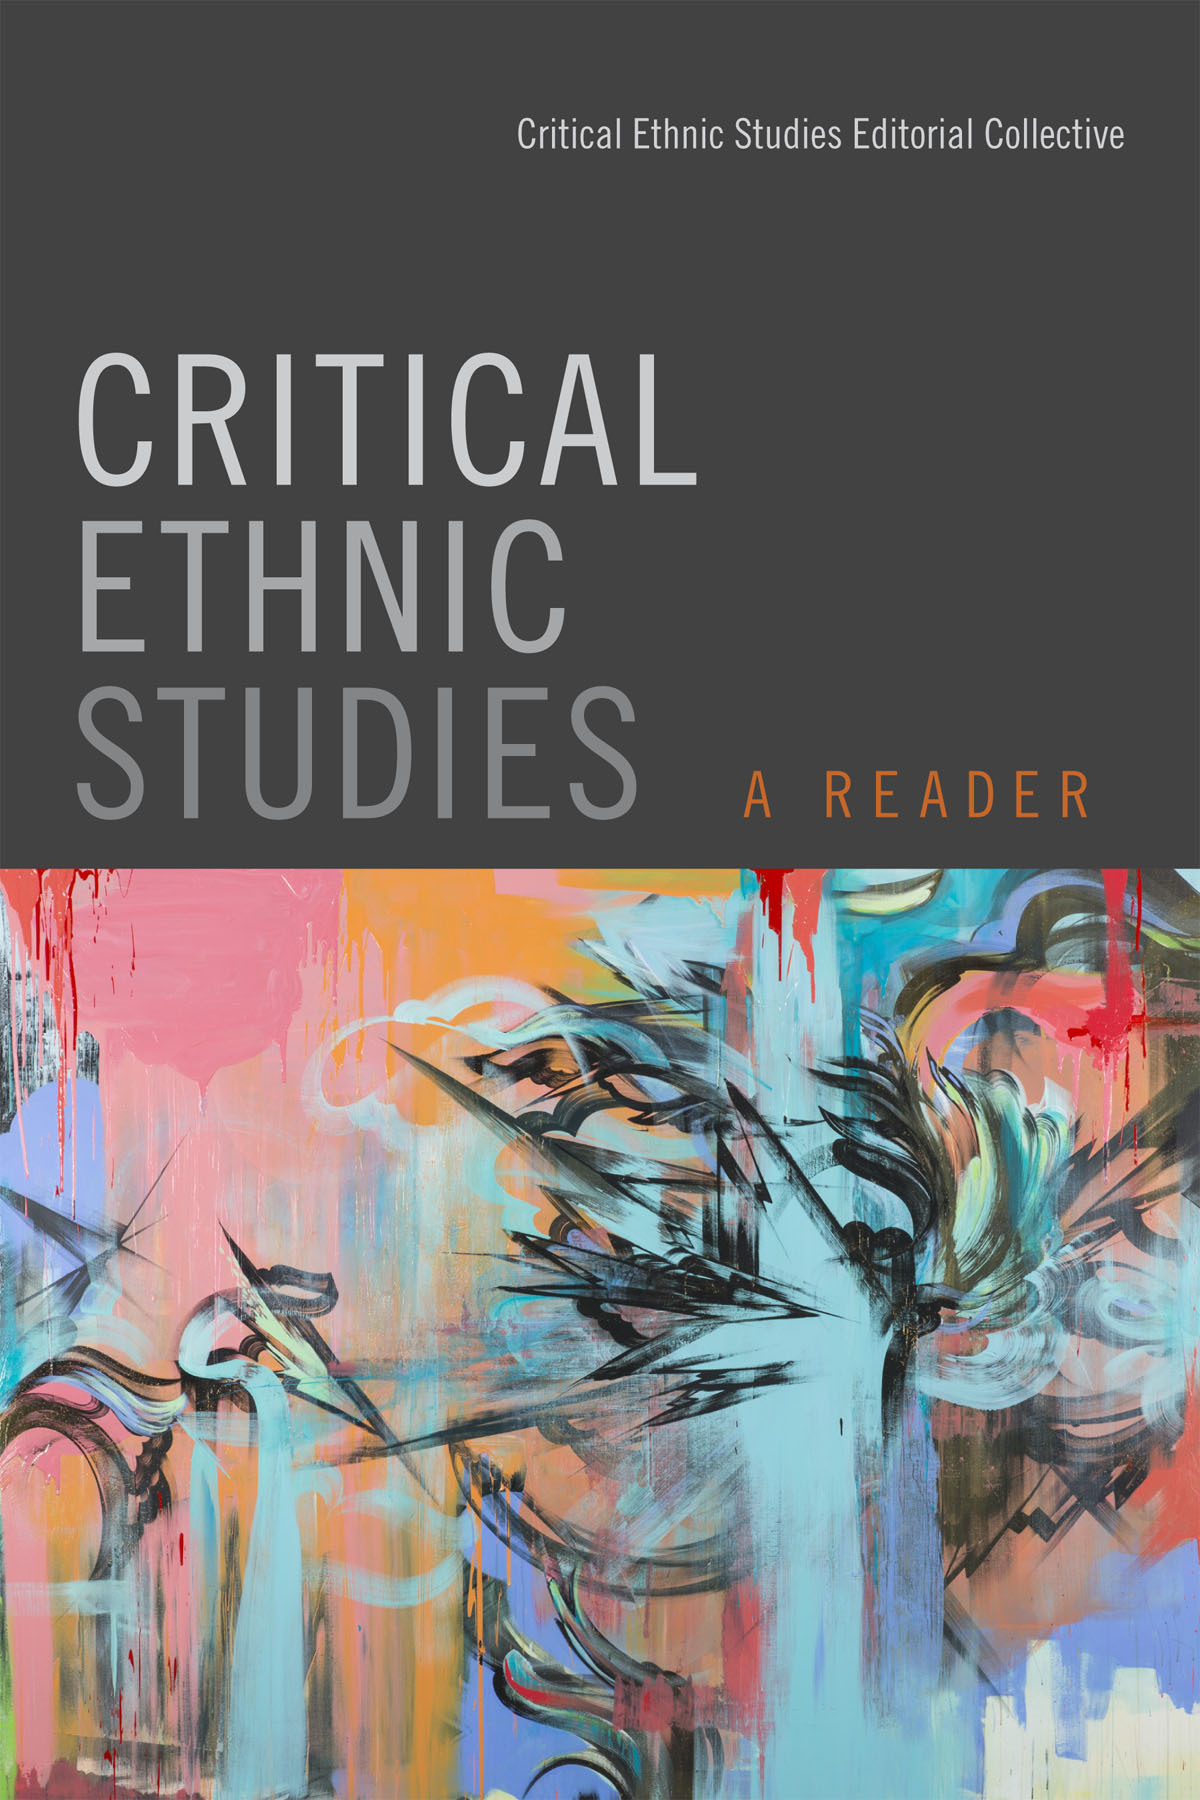 Critical Ethnic Studies: A Reader Critical Ethnic Studies Editorial Collective